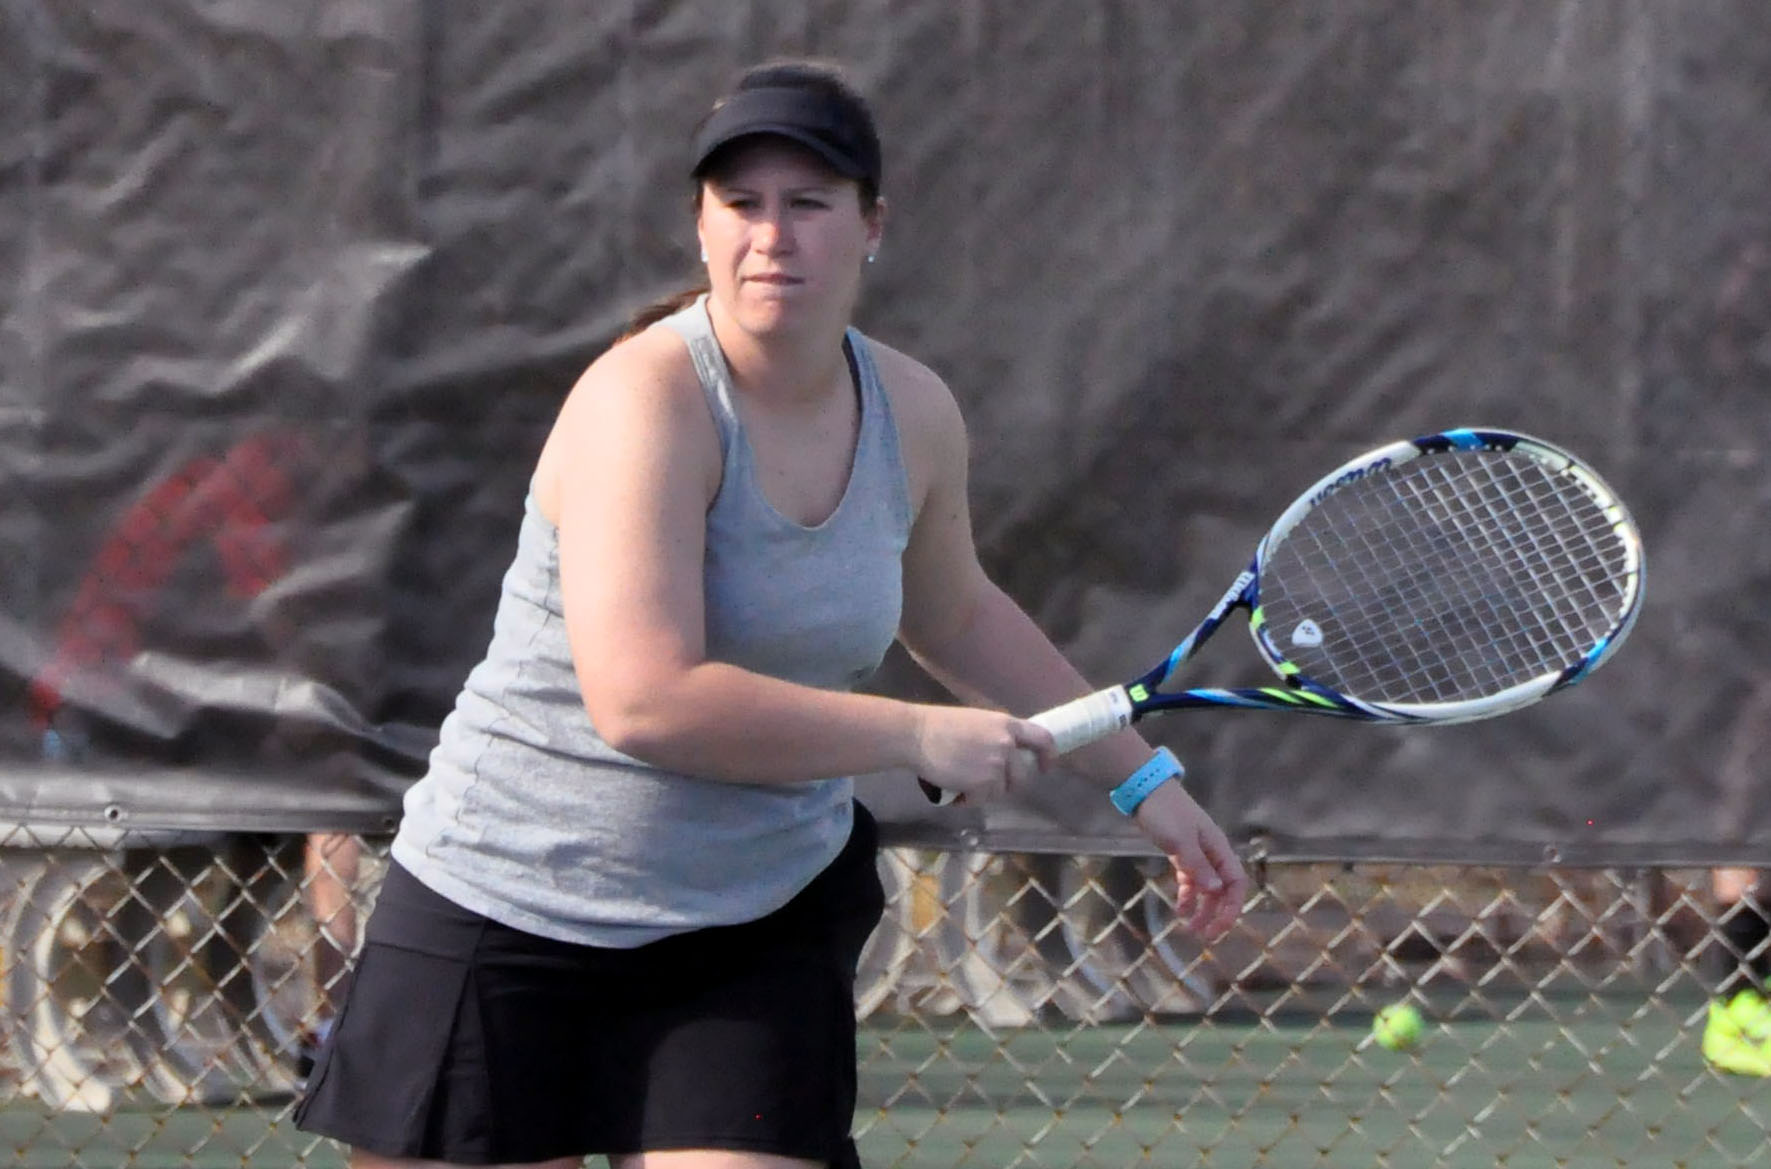 Women's Tennis: Lee, McDonald lead Panthers past Rust 9-0 in non-conference match